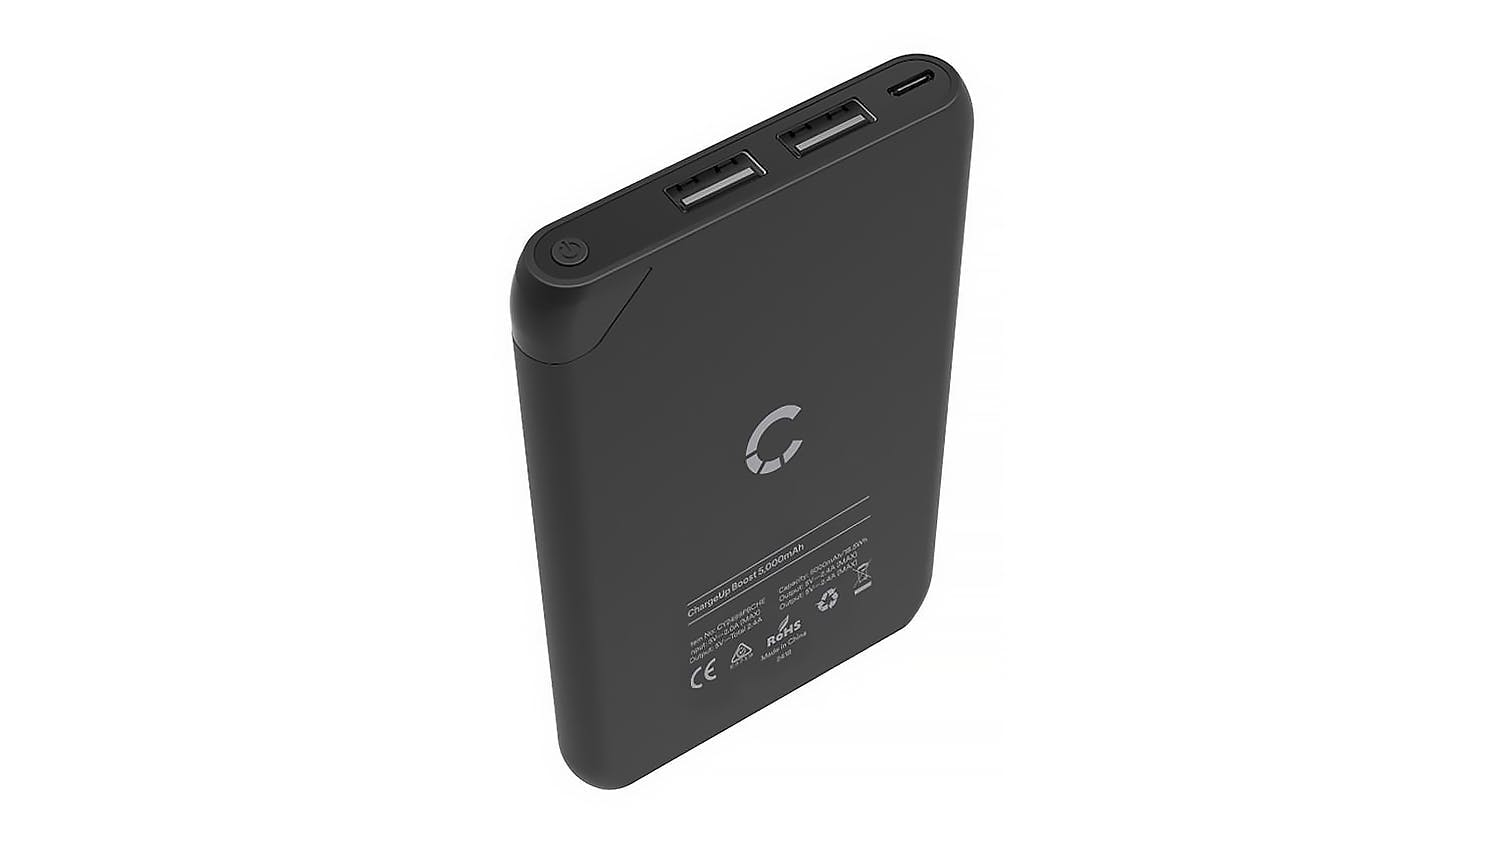 Cygnett Chargeup Boost 5000mAh Power Bank - Black